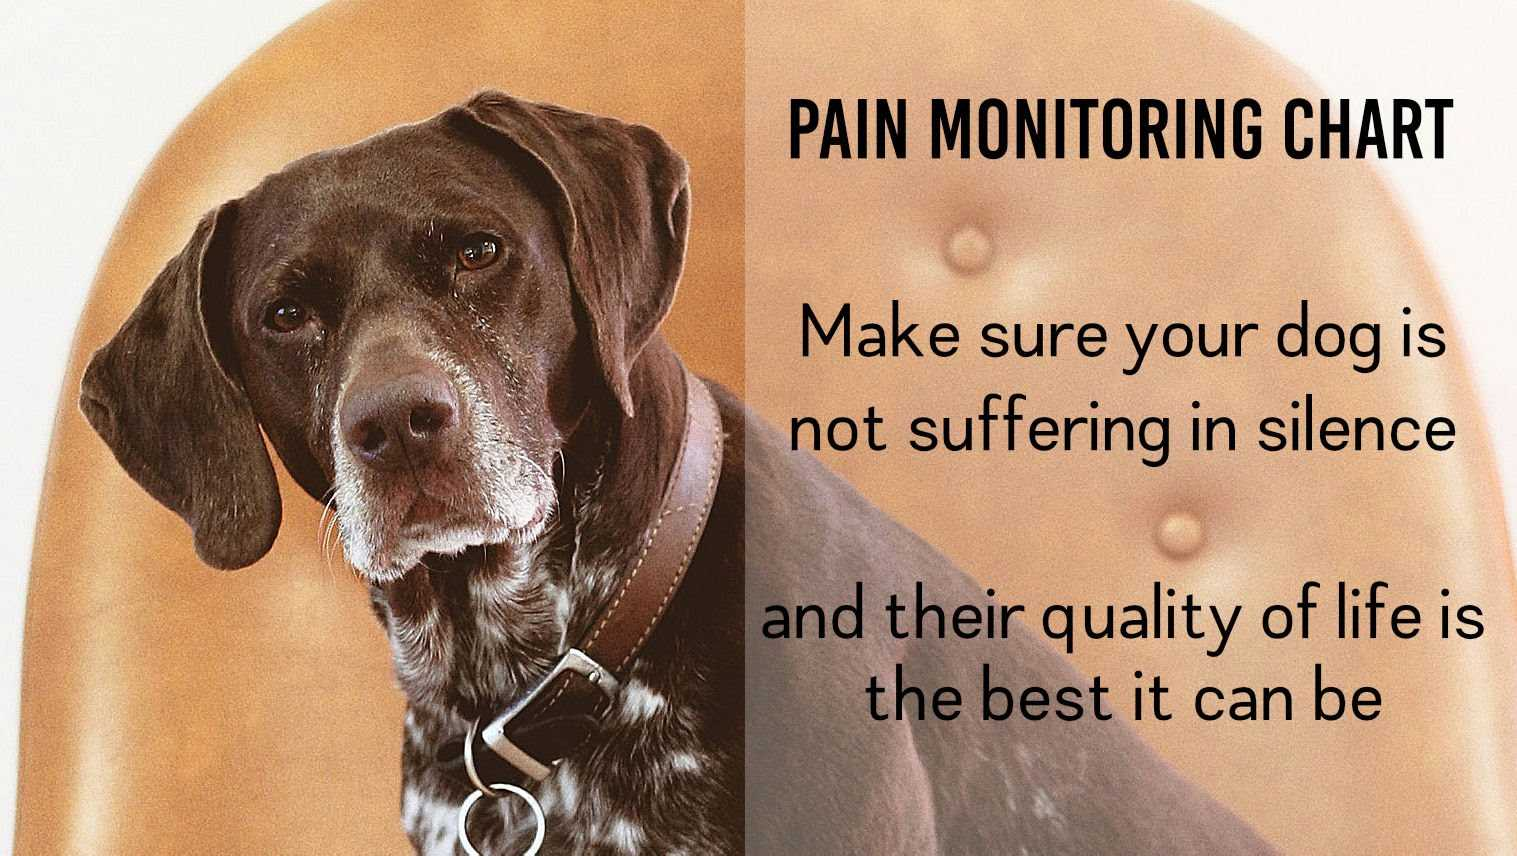 use the pain monitoring chart to see if the dietary supplement is really helping you dog